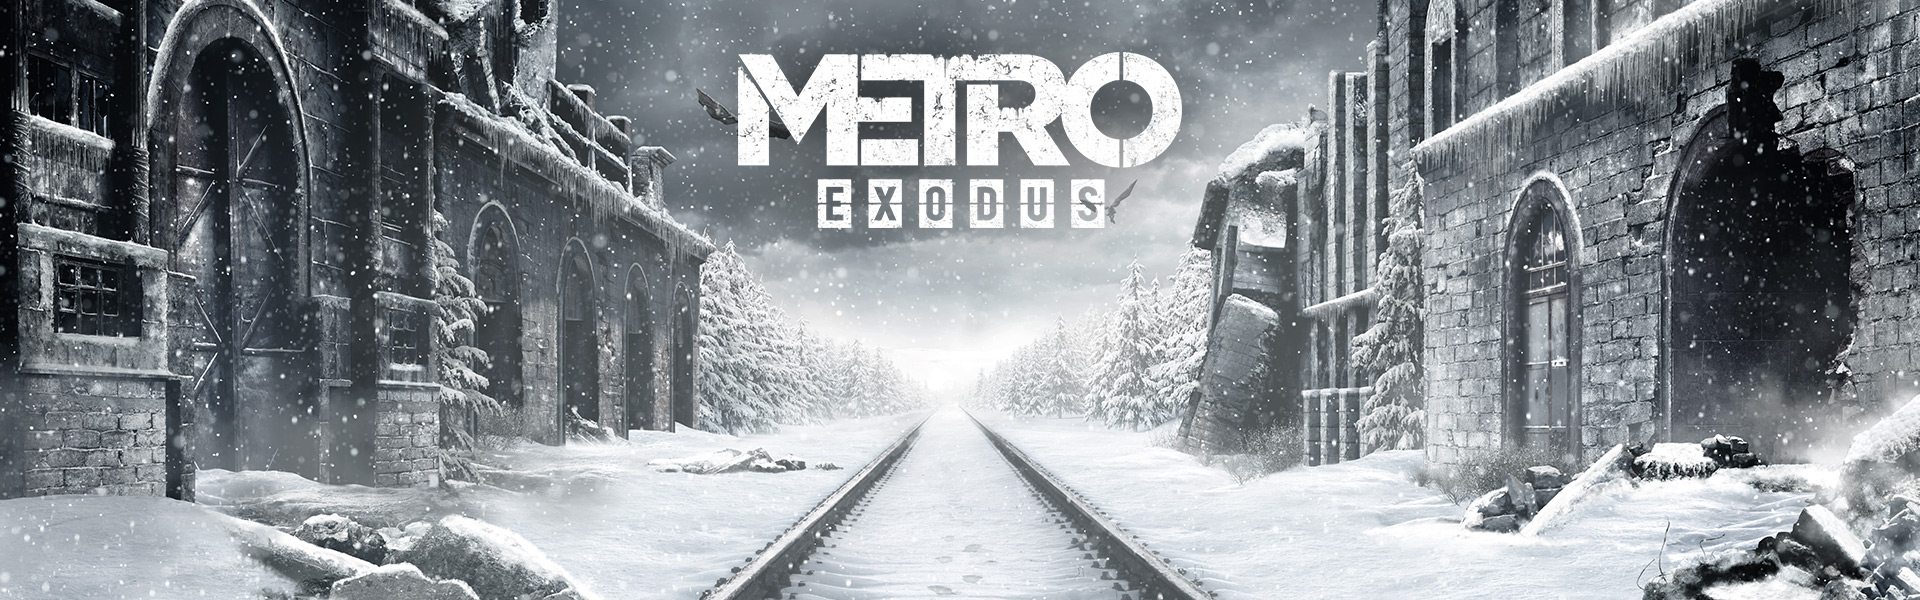 Metro exodus promotional image, a scenery of destroyed buildings during winter